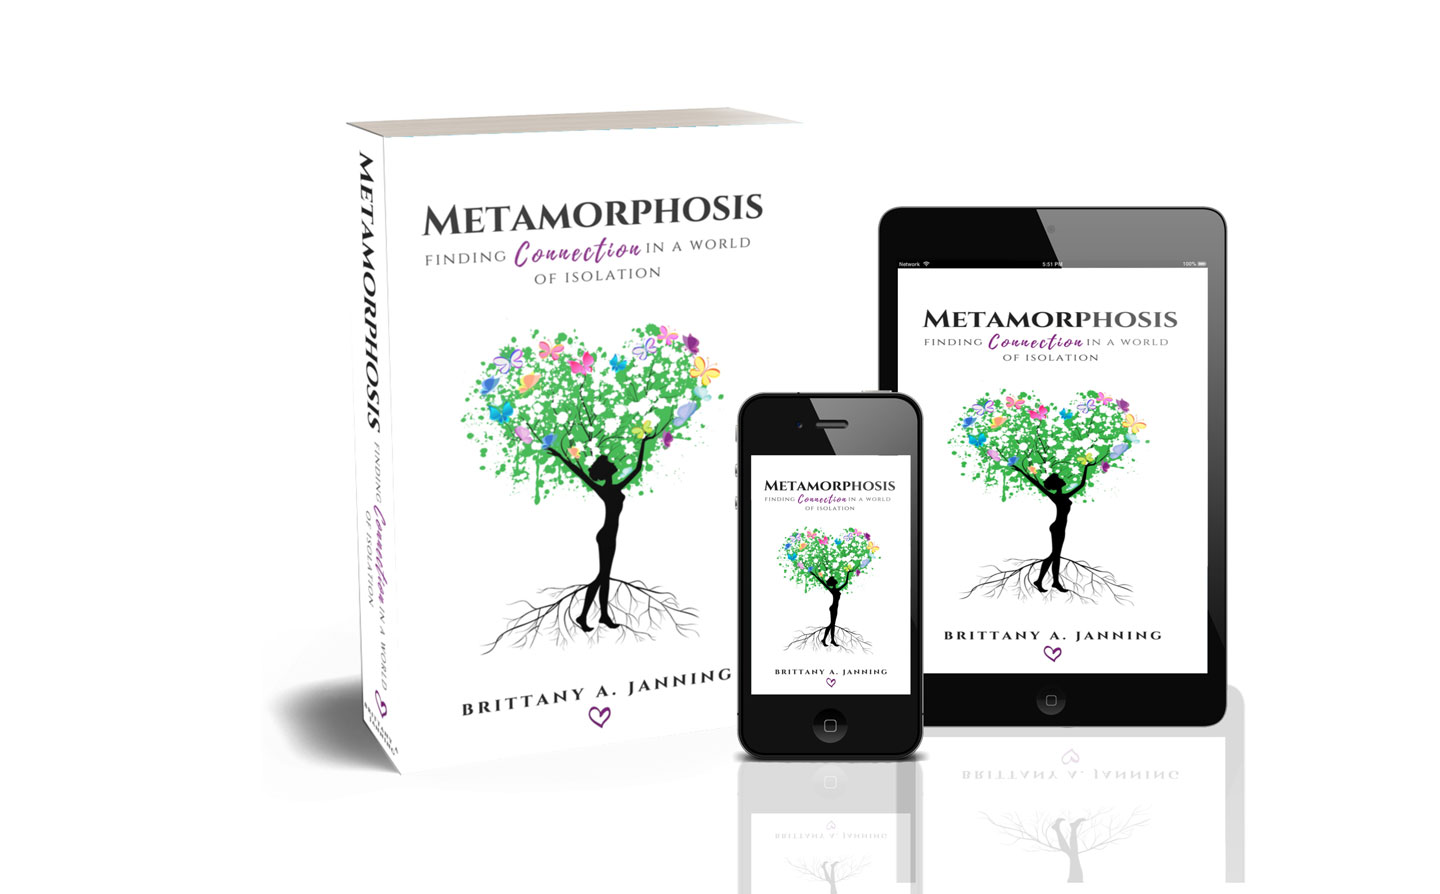 metamorphosis-book-mockup1440x894